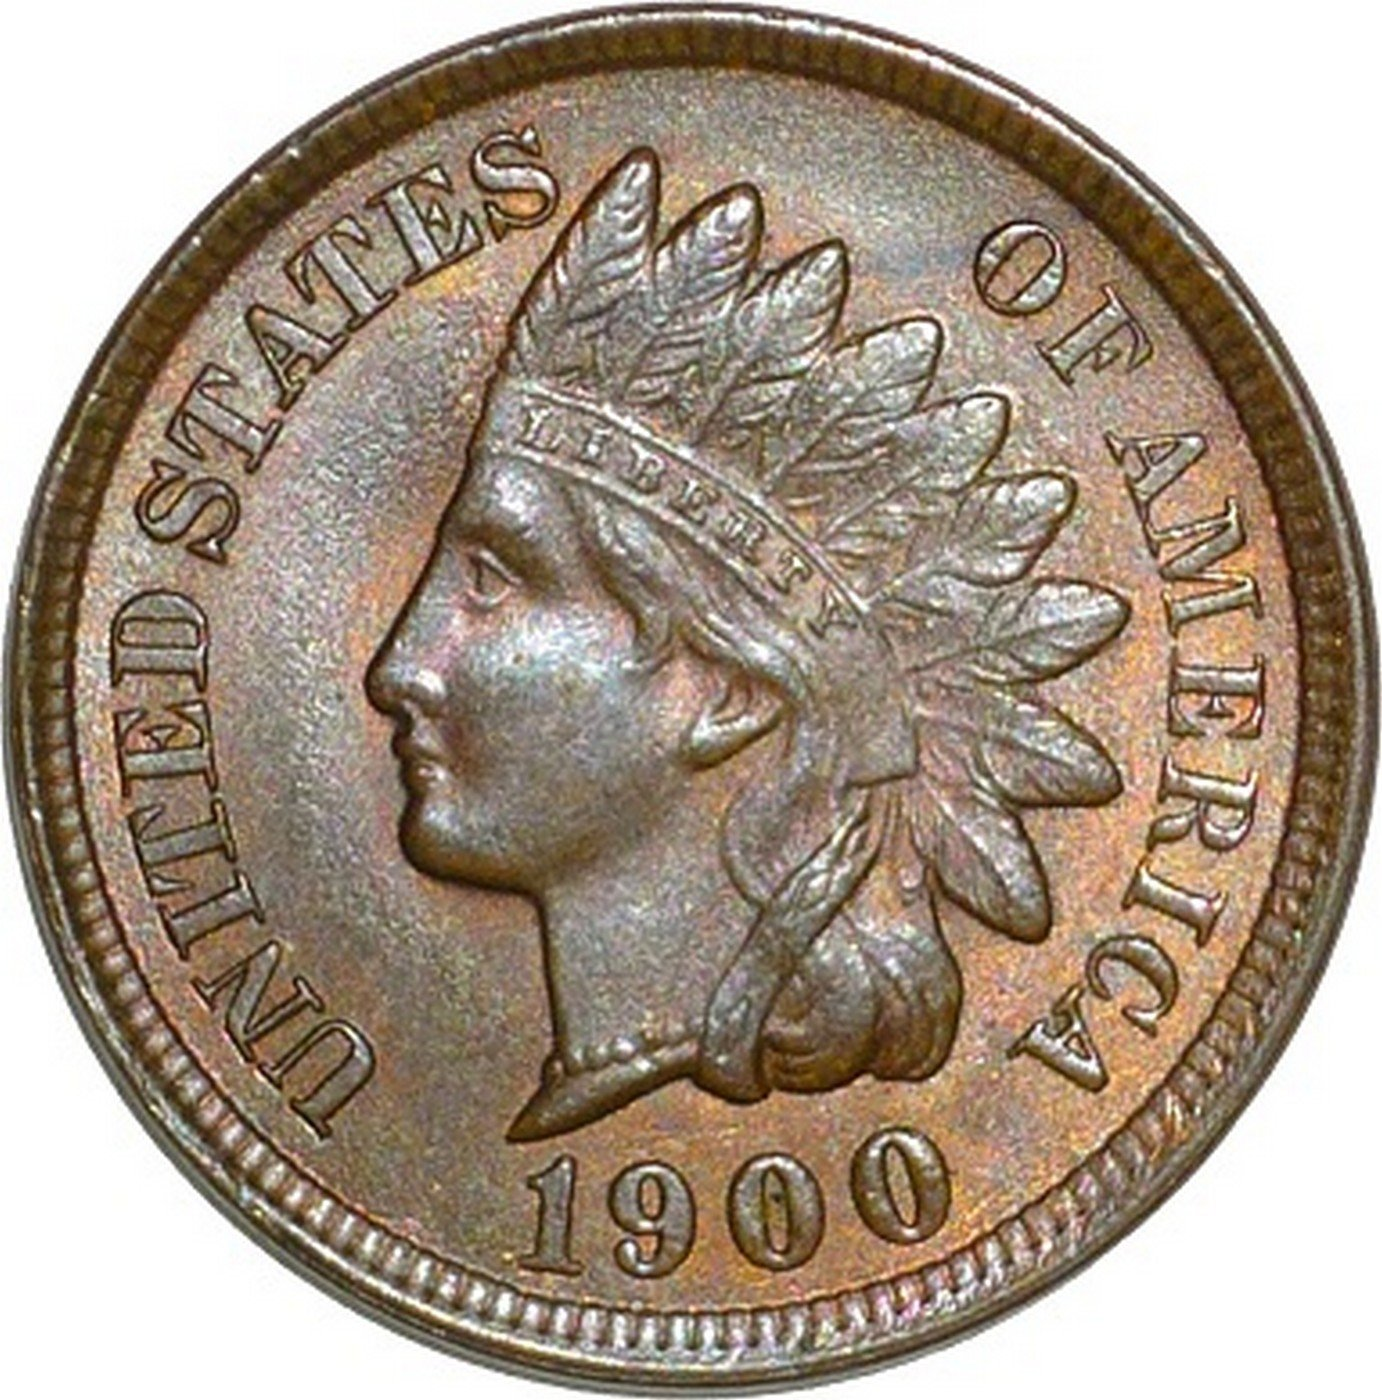 1900 RPD-027 - Indian Head Cent - Photo by David Poliquin